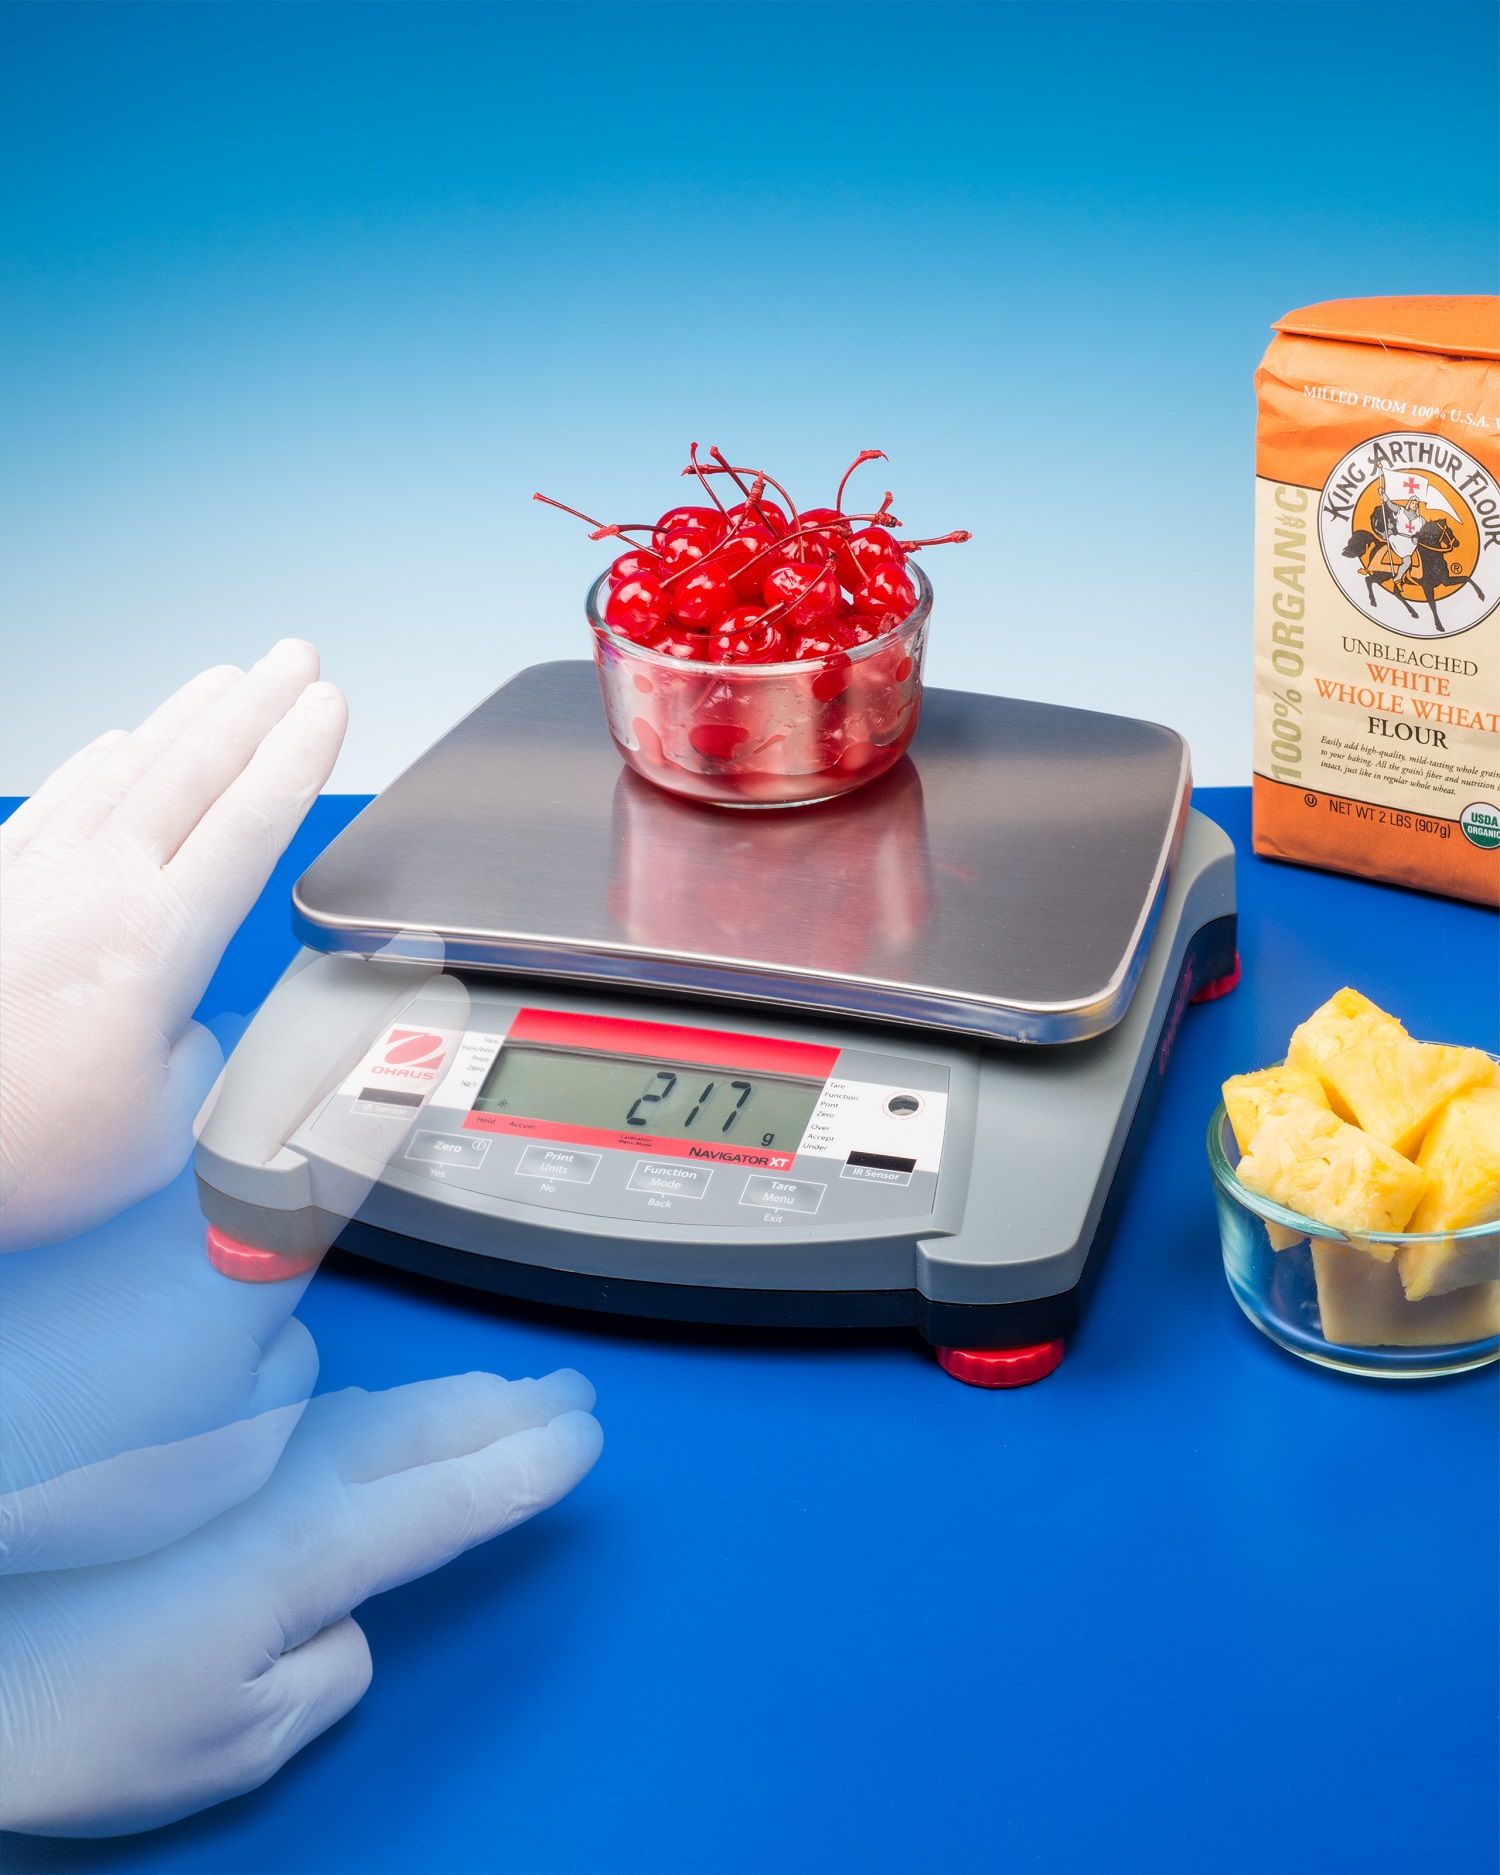 PORTABLE SCALE IS TOUCH-FREE FOR FAST WEIGHING